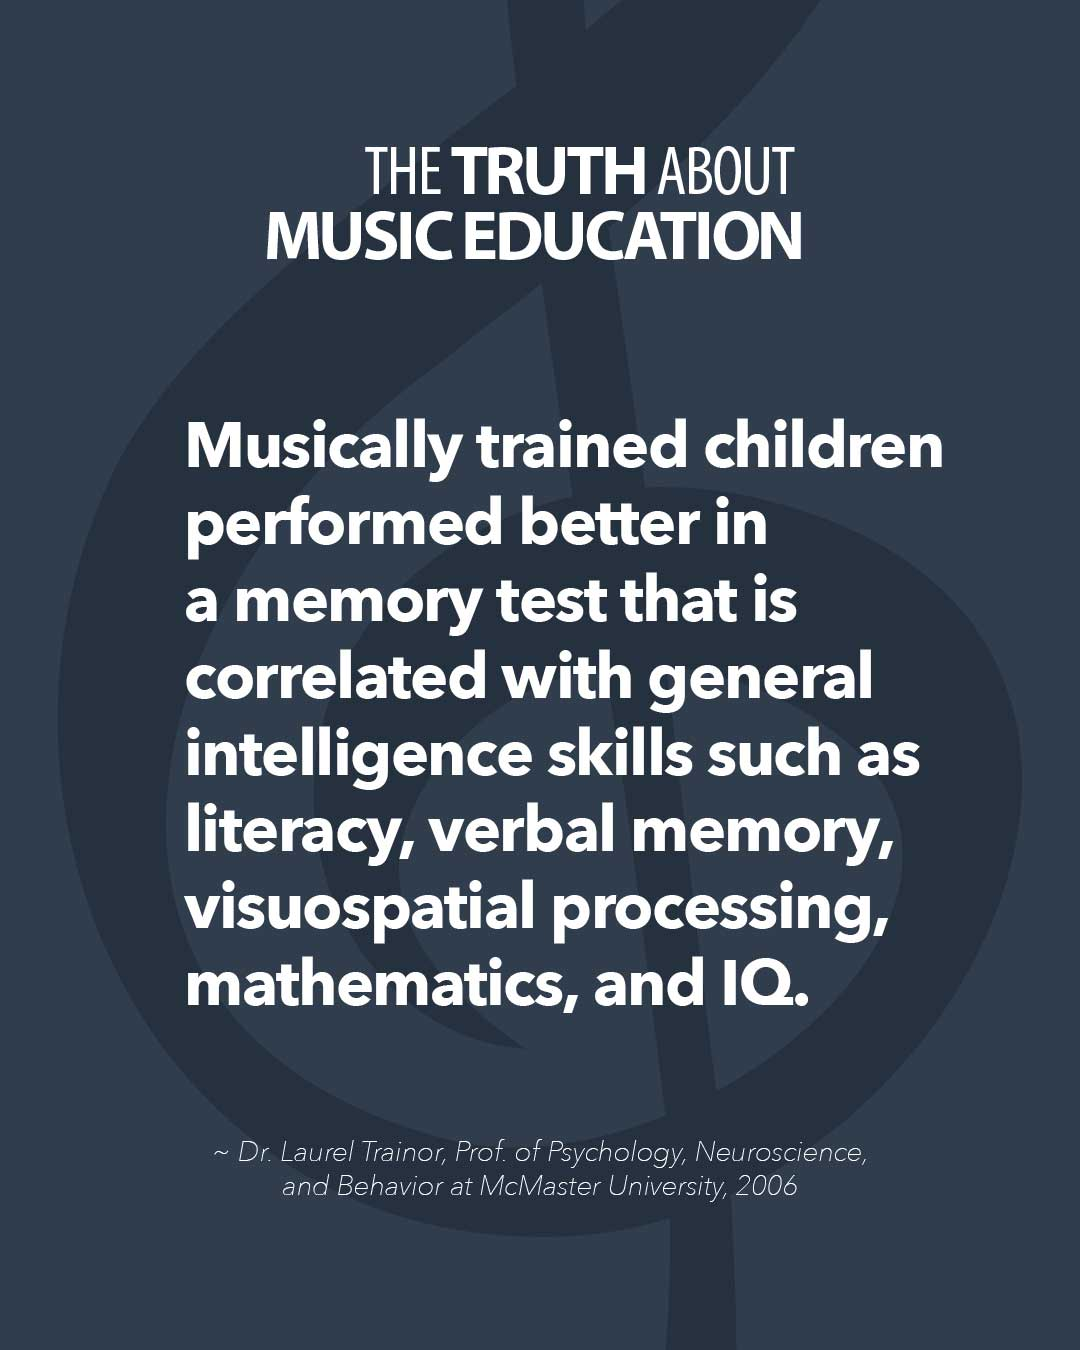 music training helps student memory | paige's music news about band